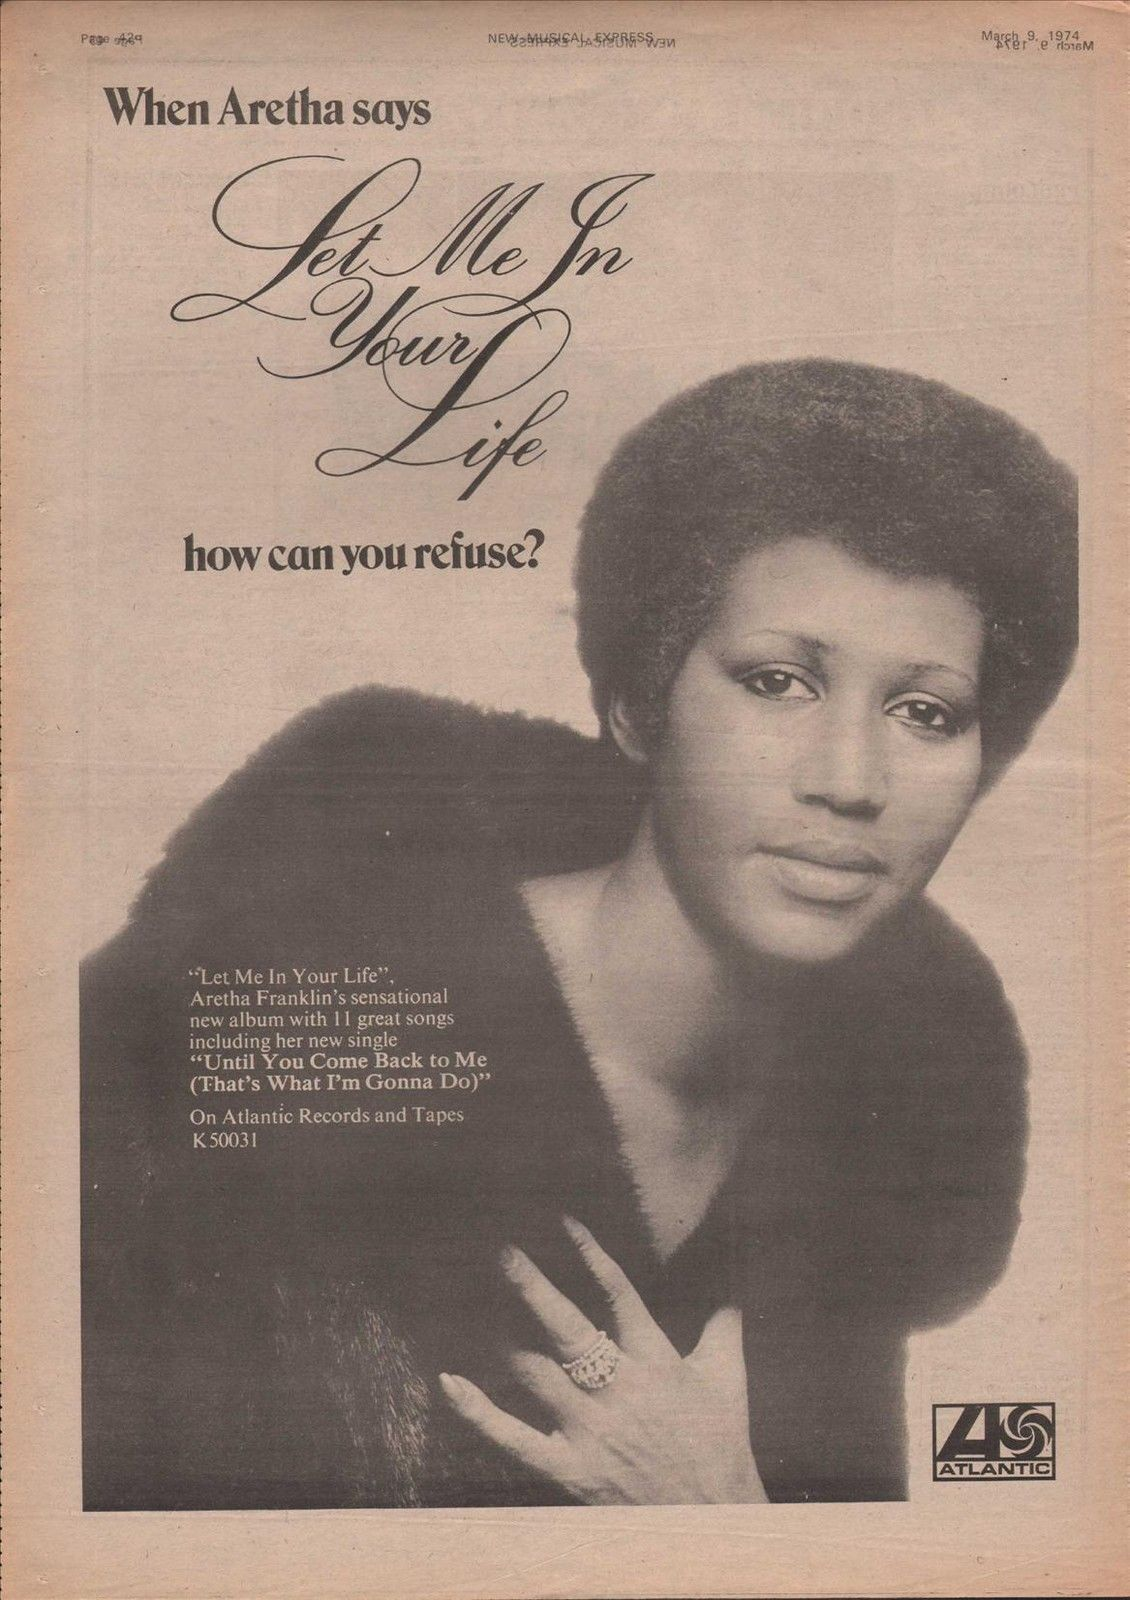 aretha franklin poster size let me in your life advert 1974 vintage clipping